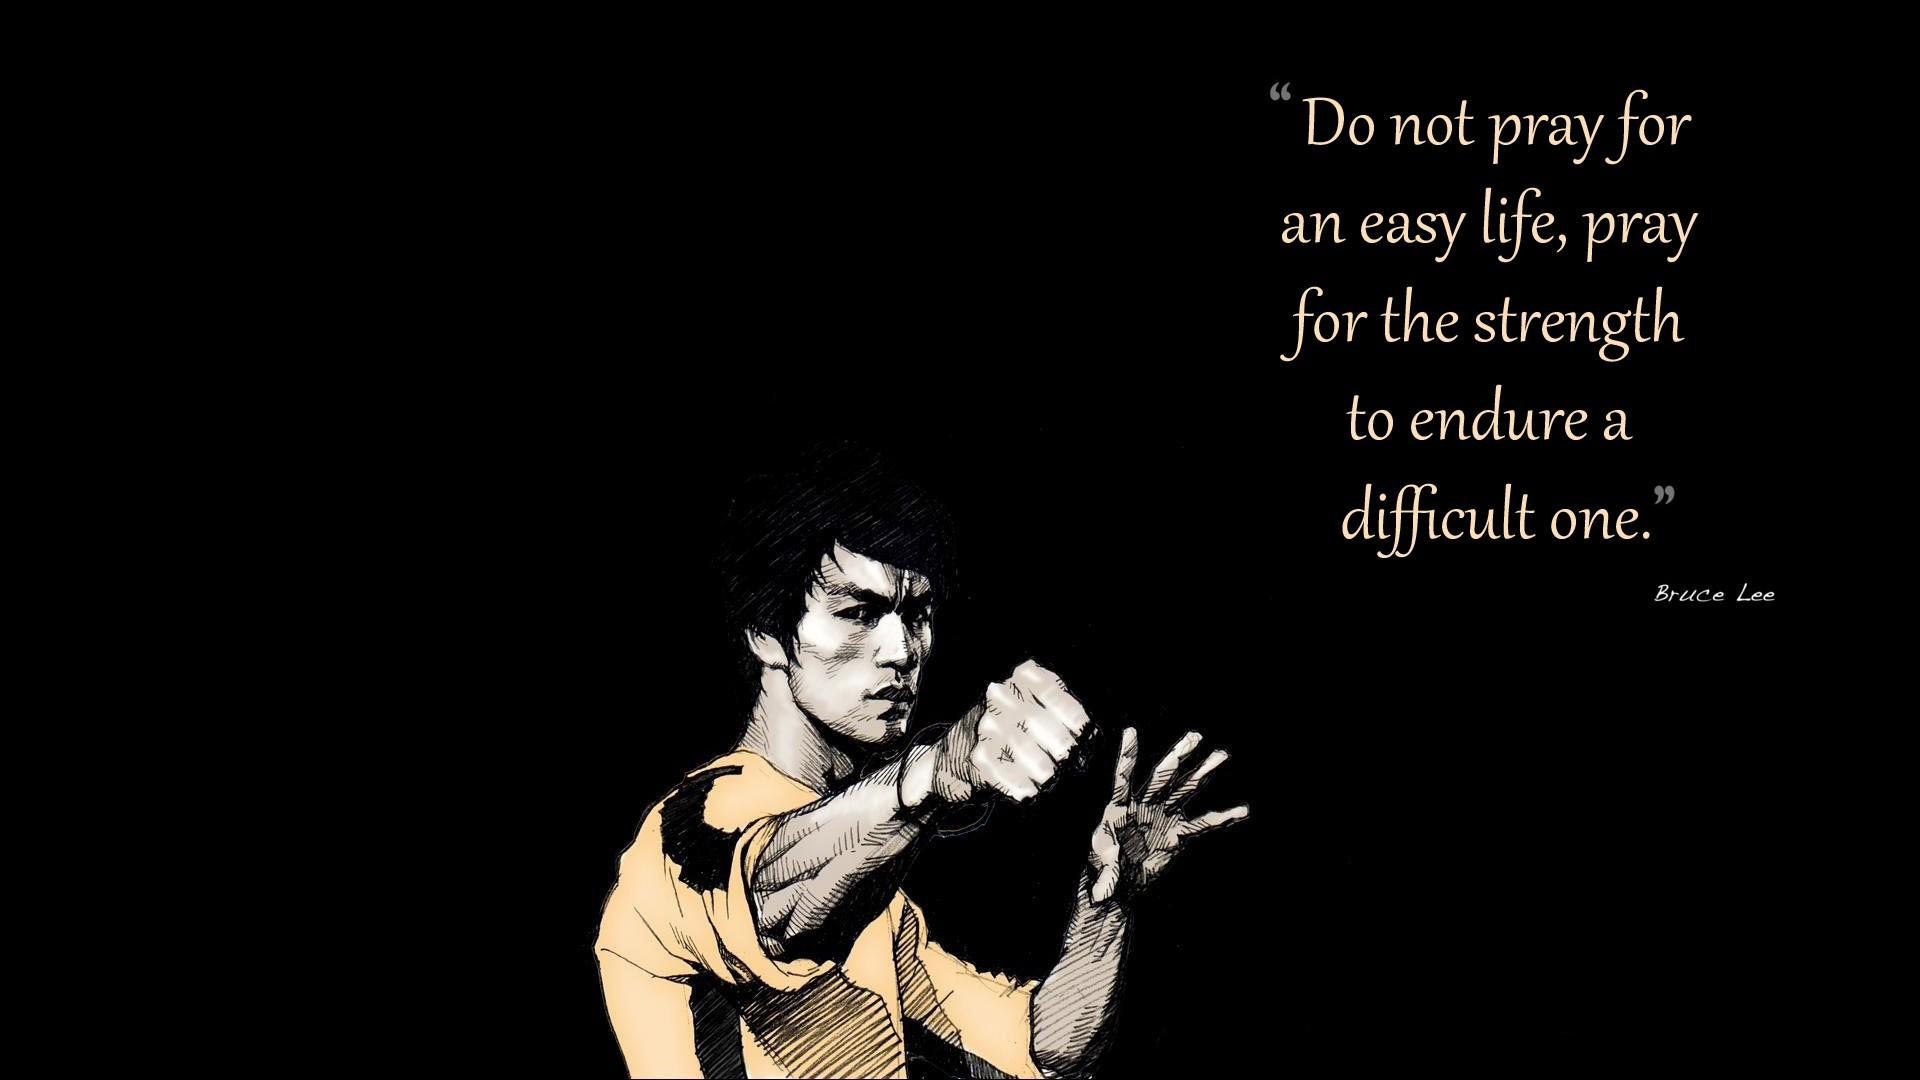 Bruce Lee Quotes Artwork Wallpaper